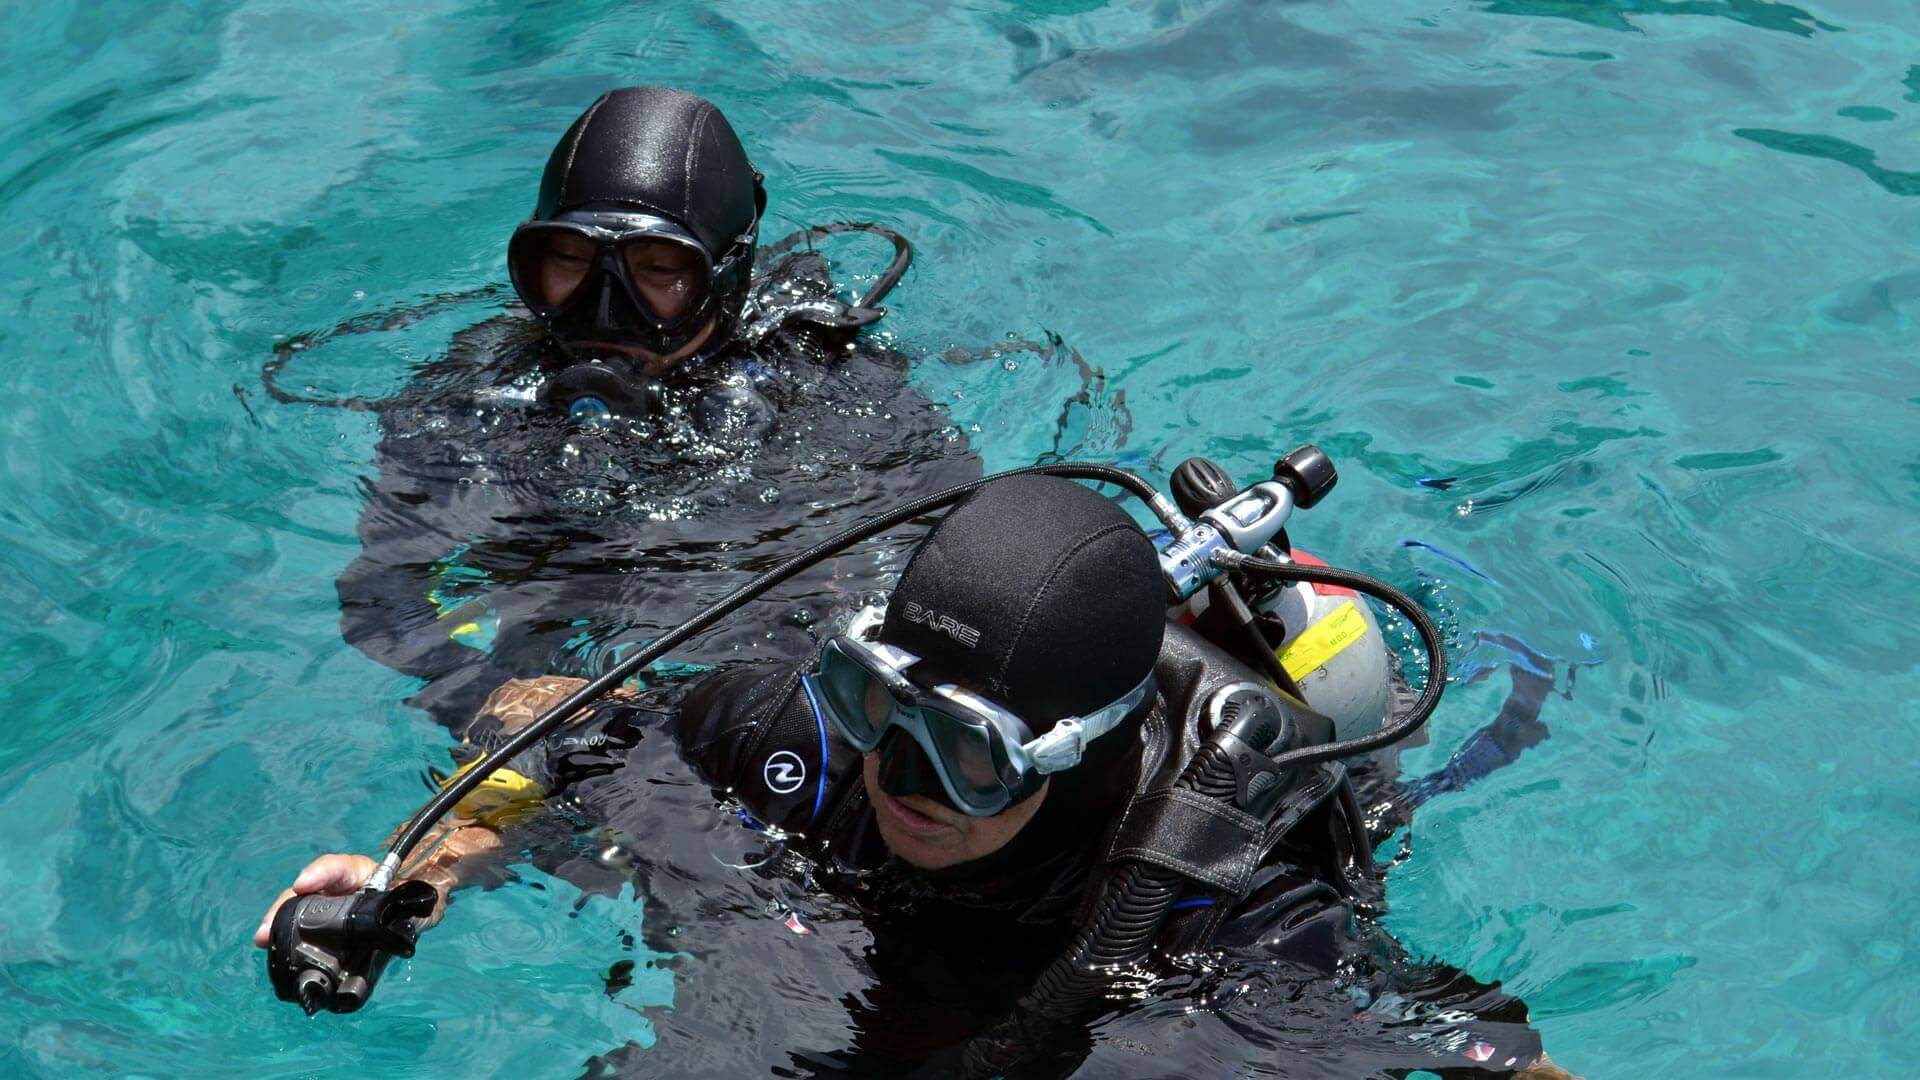 Phuket scuba diving blog news updates local dive thailand - Where to dive in thailand ...